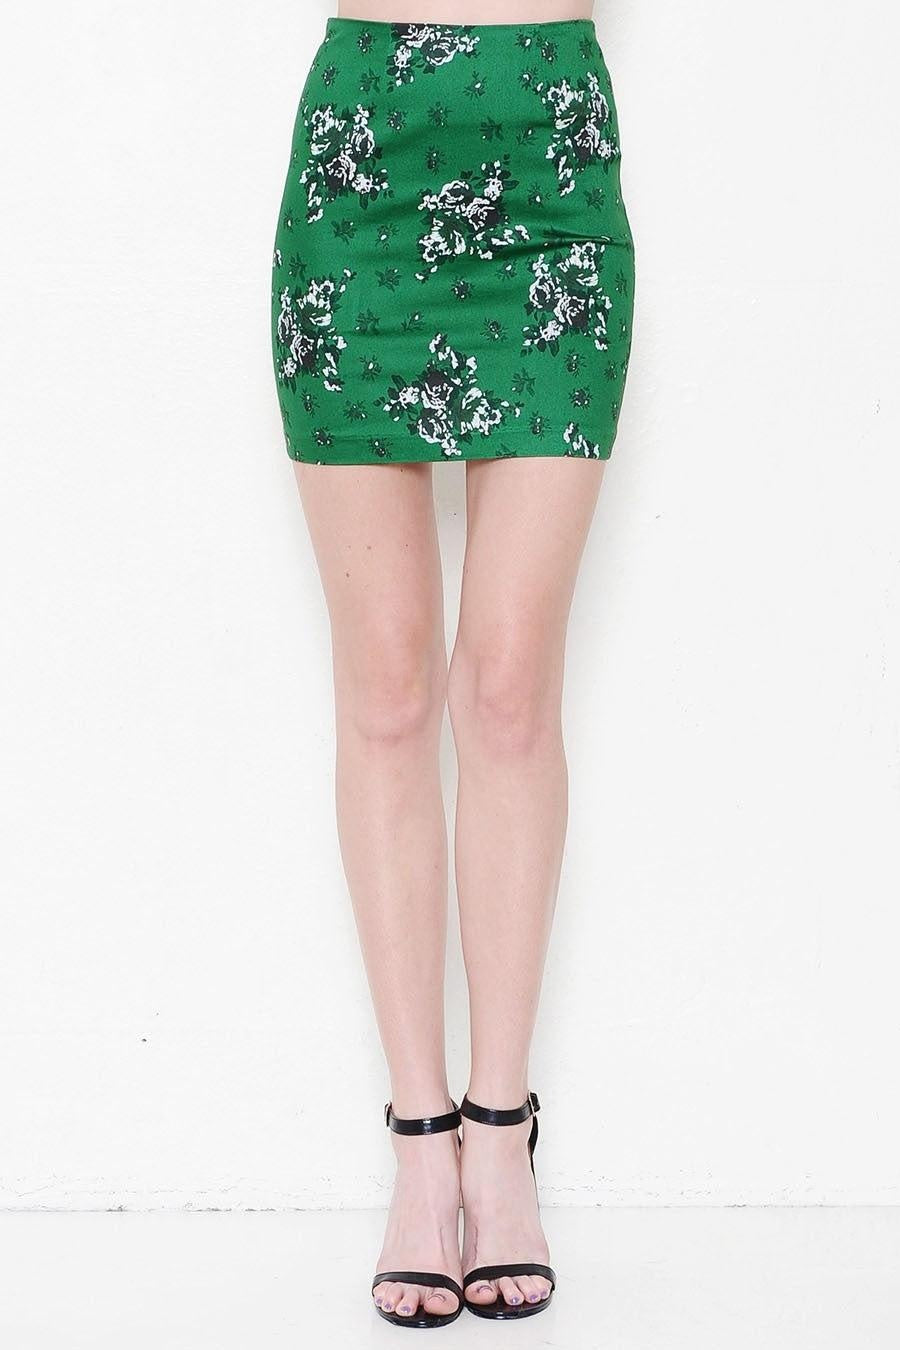 Emerald Floral Mini Skirt - My Royal Closet